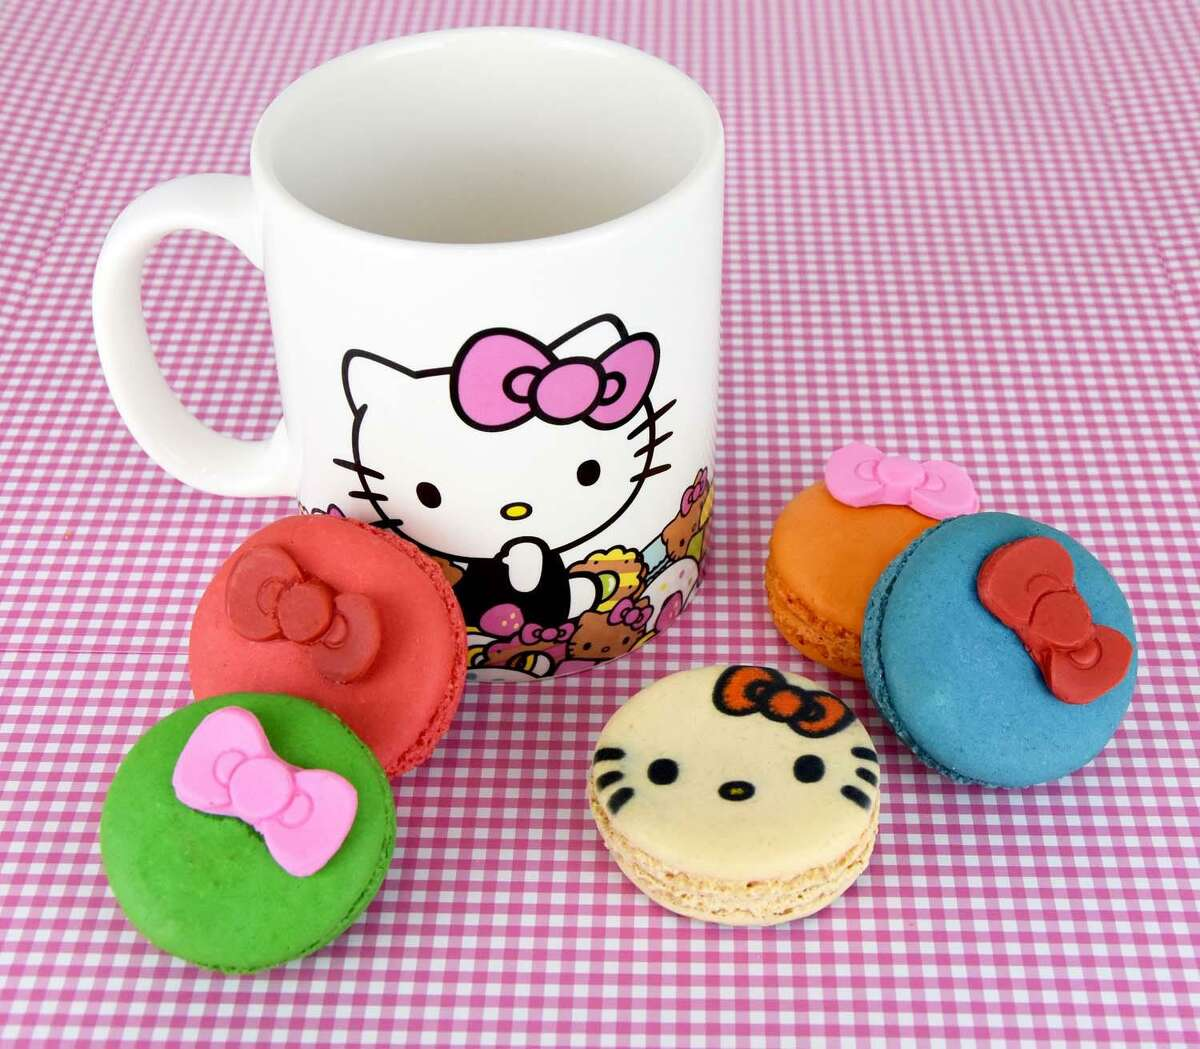 The Hello Kitty Cafe Truck will be making an appearance in San Antonio from 10 a.m. to 8 p.m. June 3 near the Barnes & Noble location at The Shops at La Cantera, offering an array of sweet treats, merchandise and other goodies for fans of all ages.